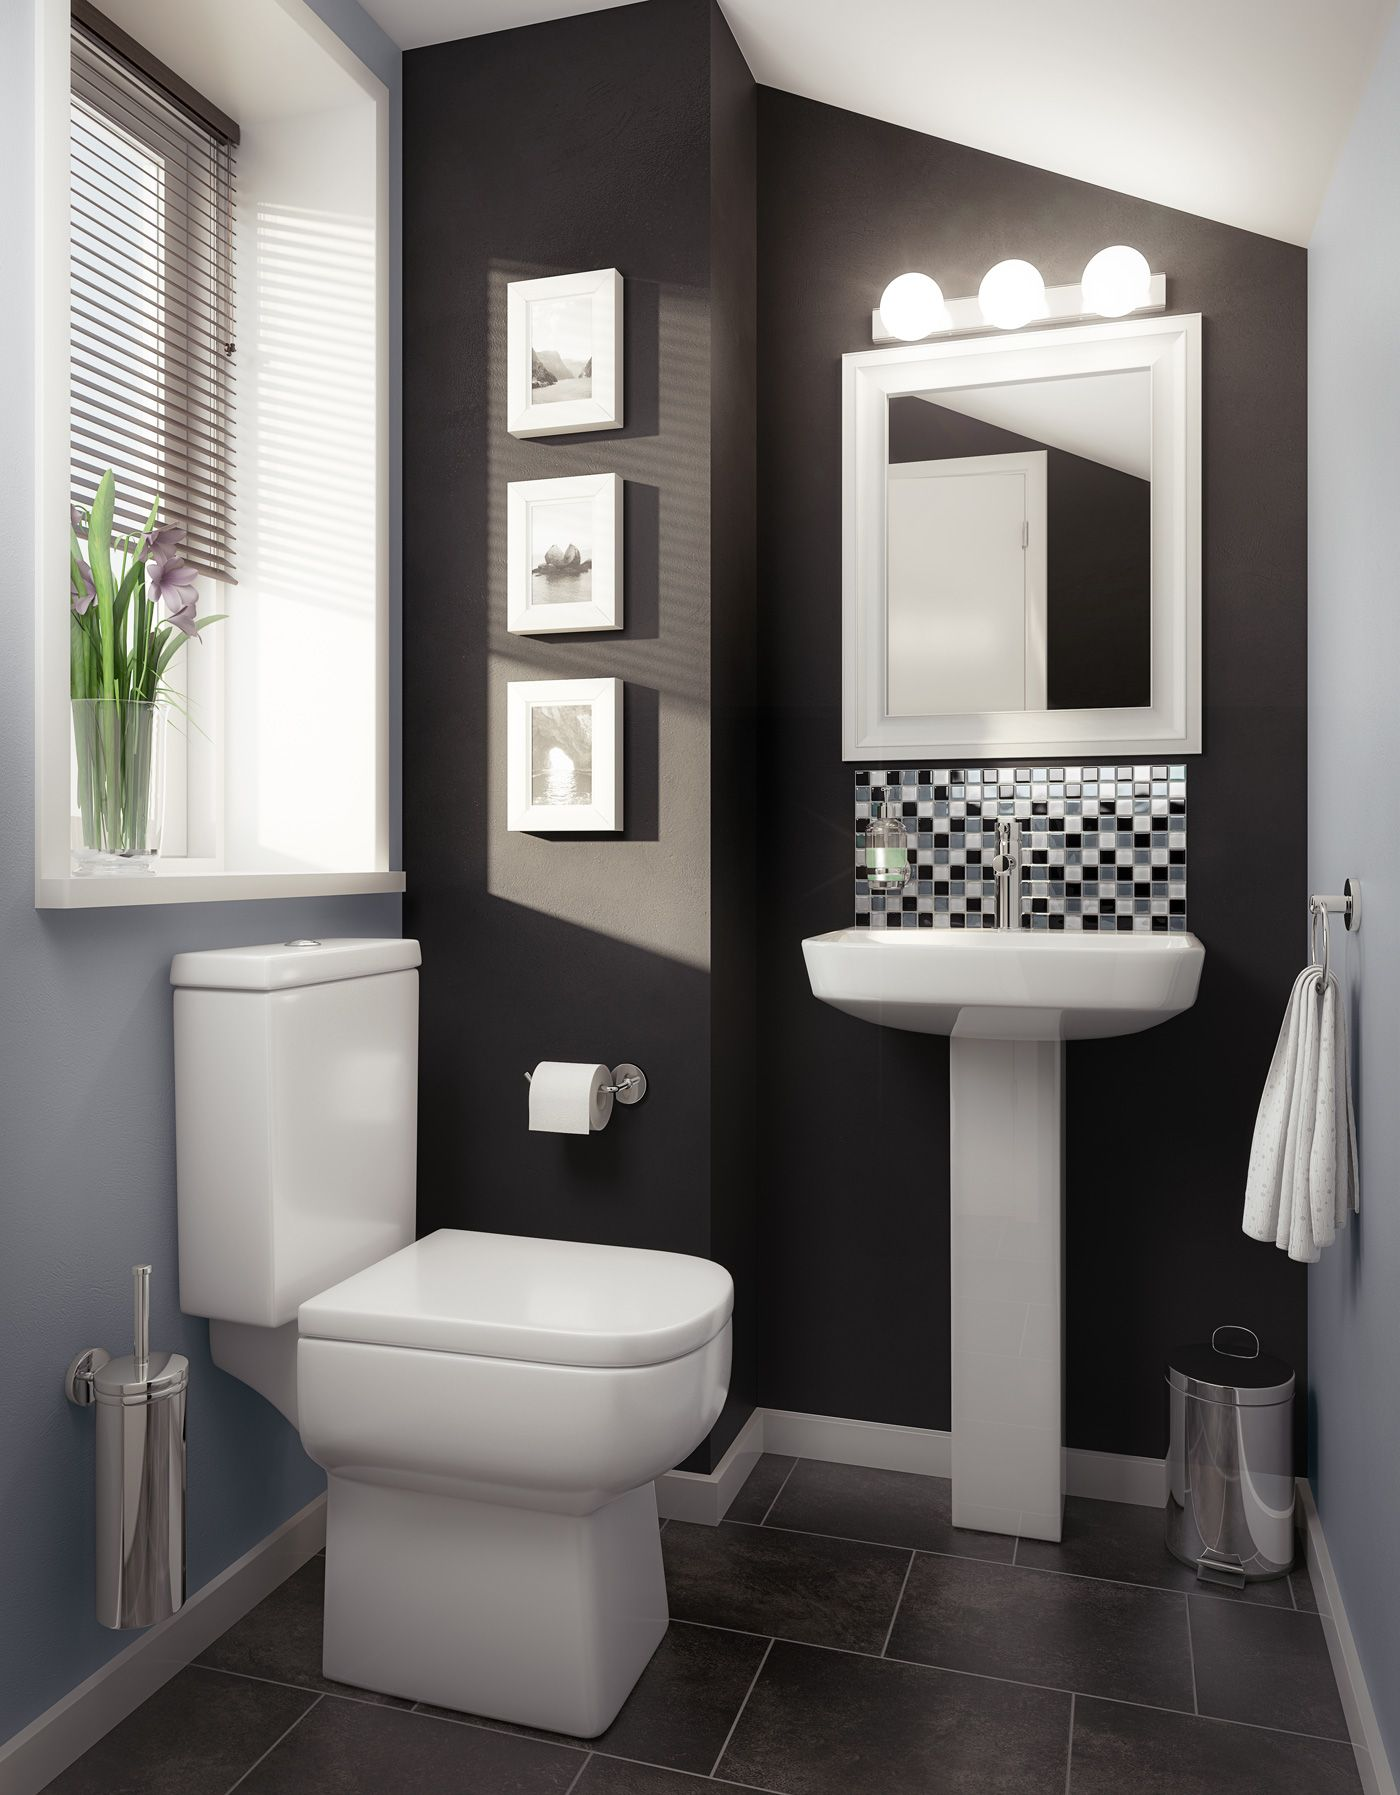 cloakroom bathroom ideas small cloakroom ideas search t 11021